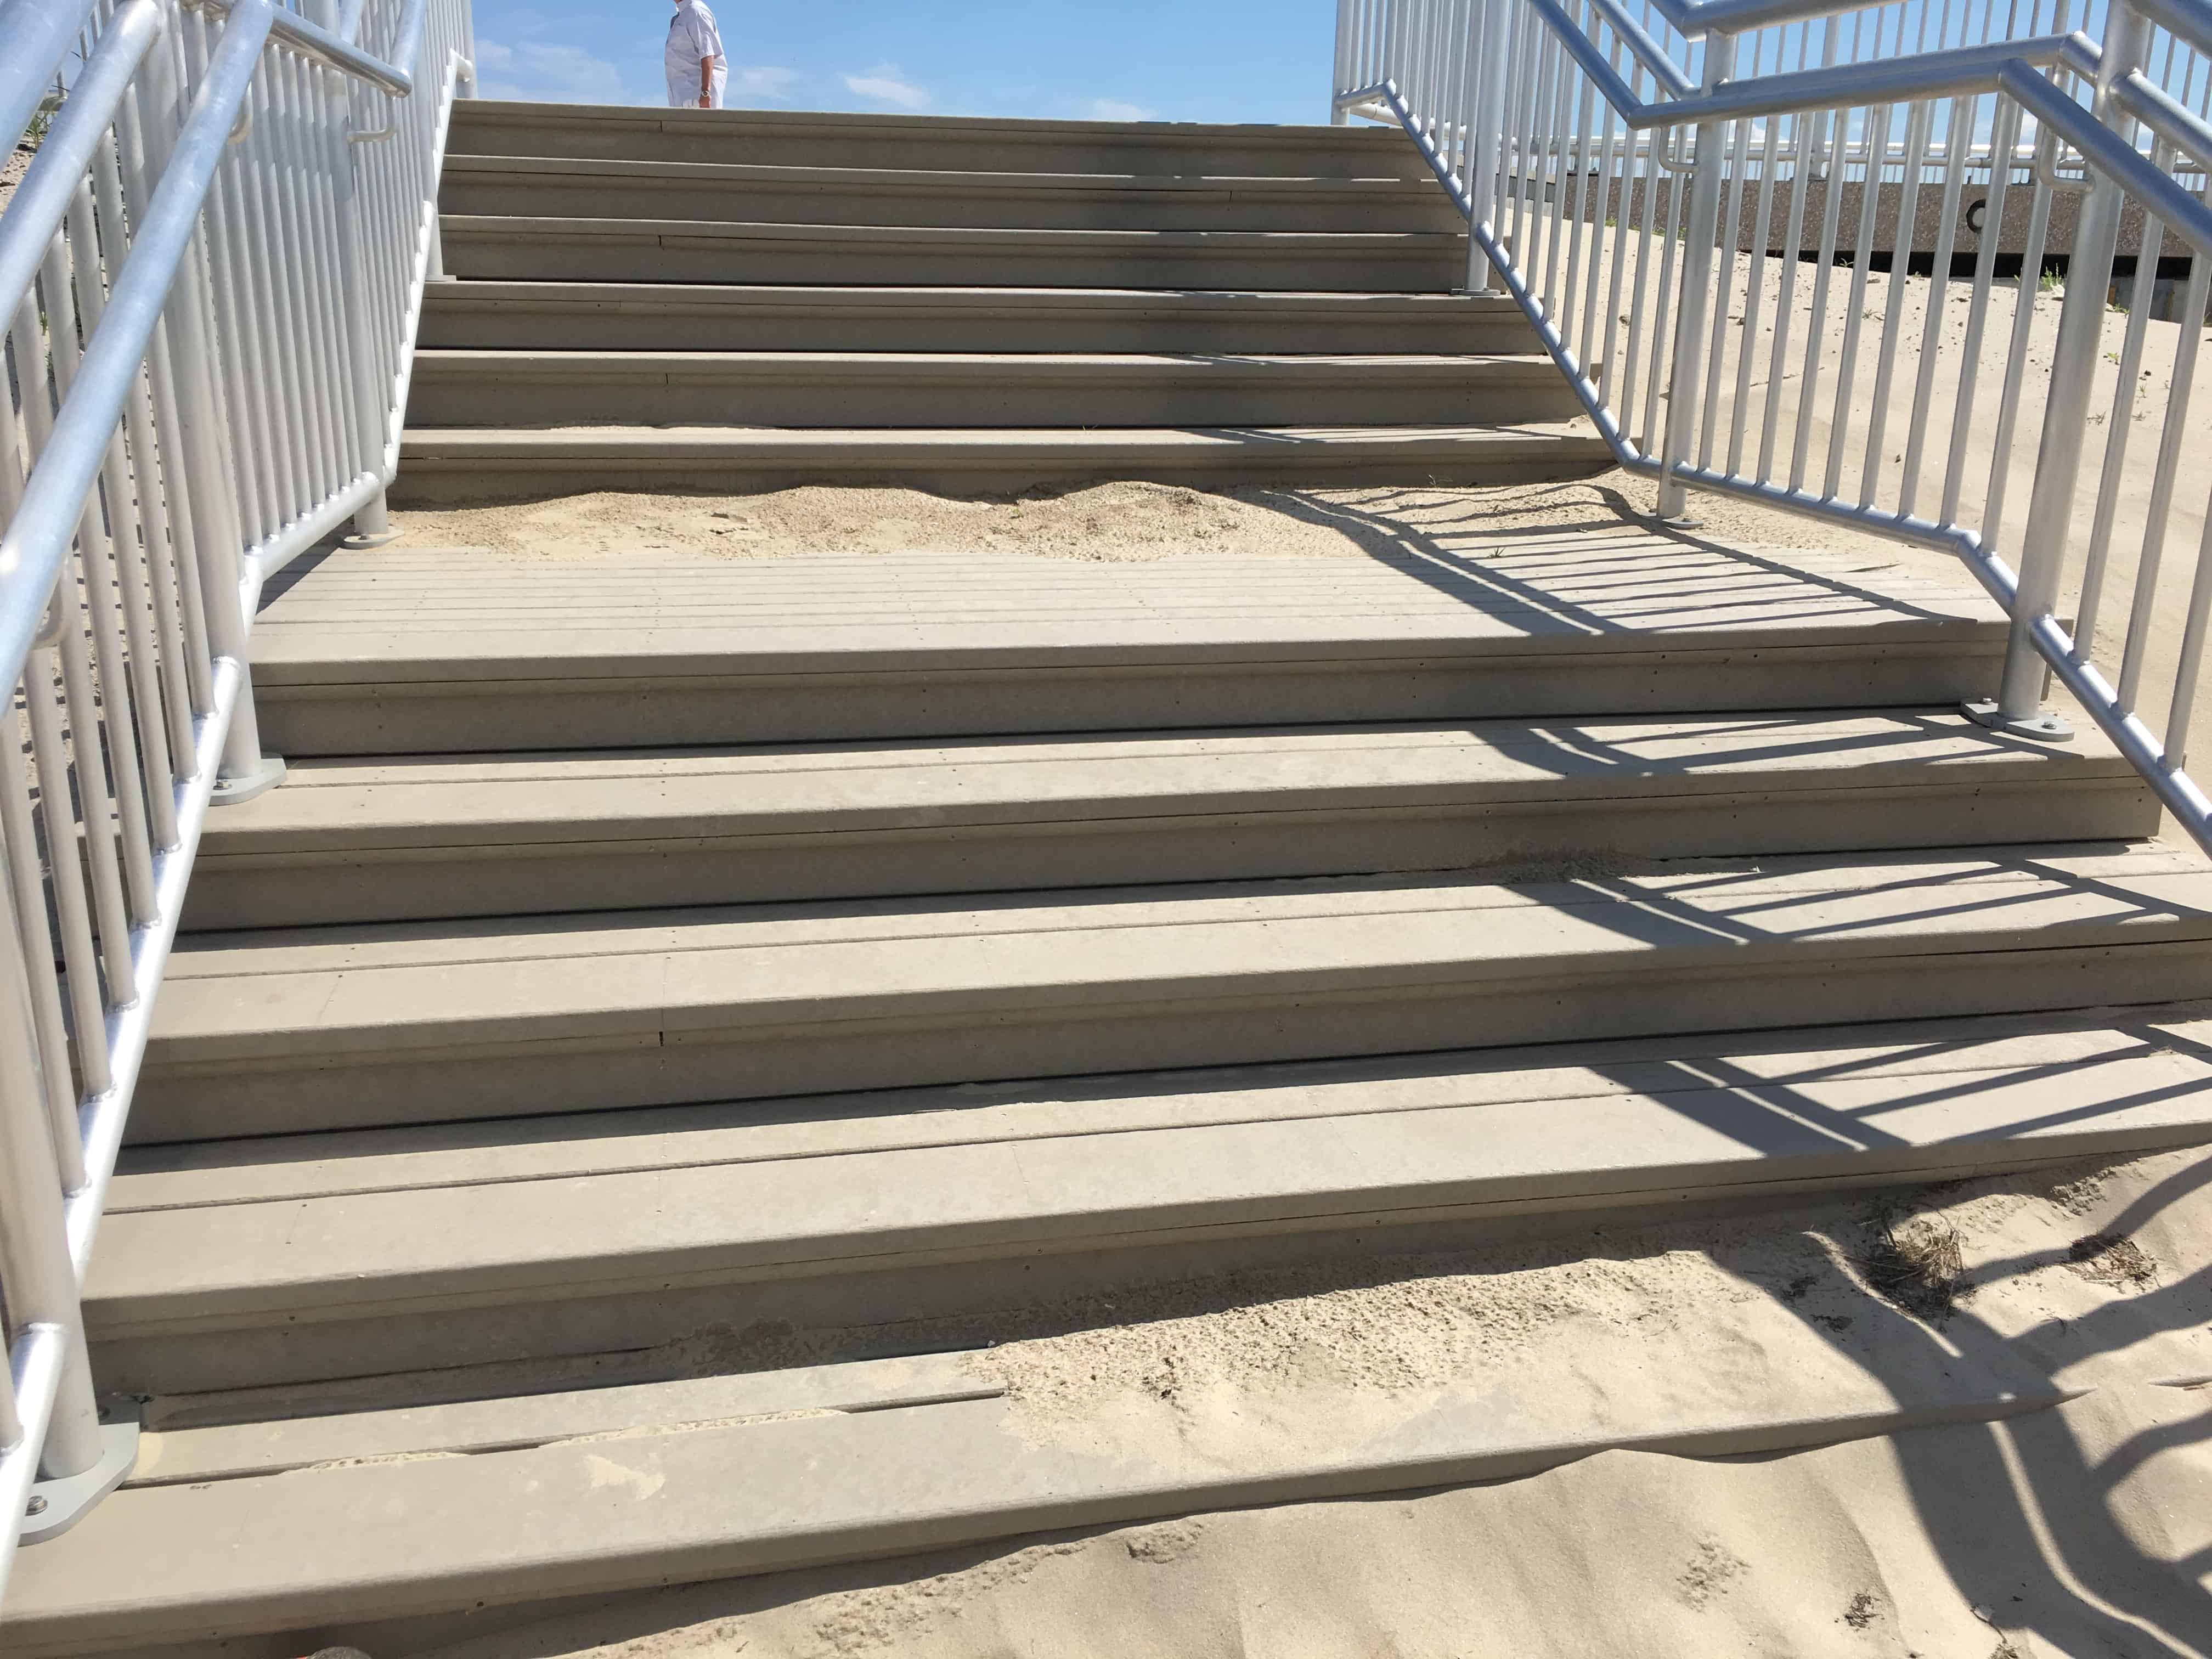 sandy stair steps made out of recycled plastic wood